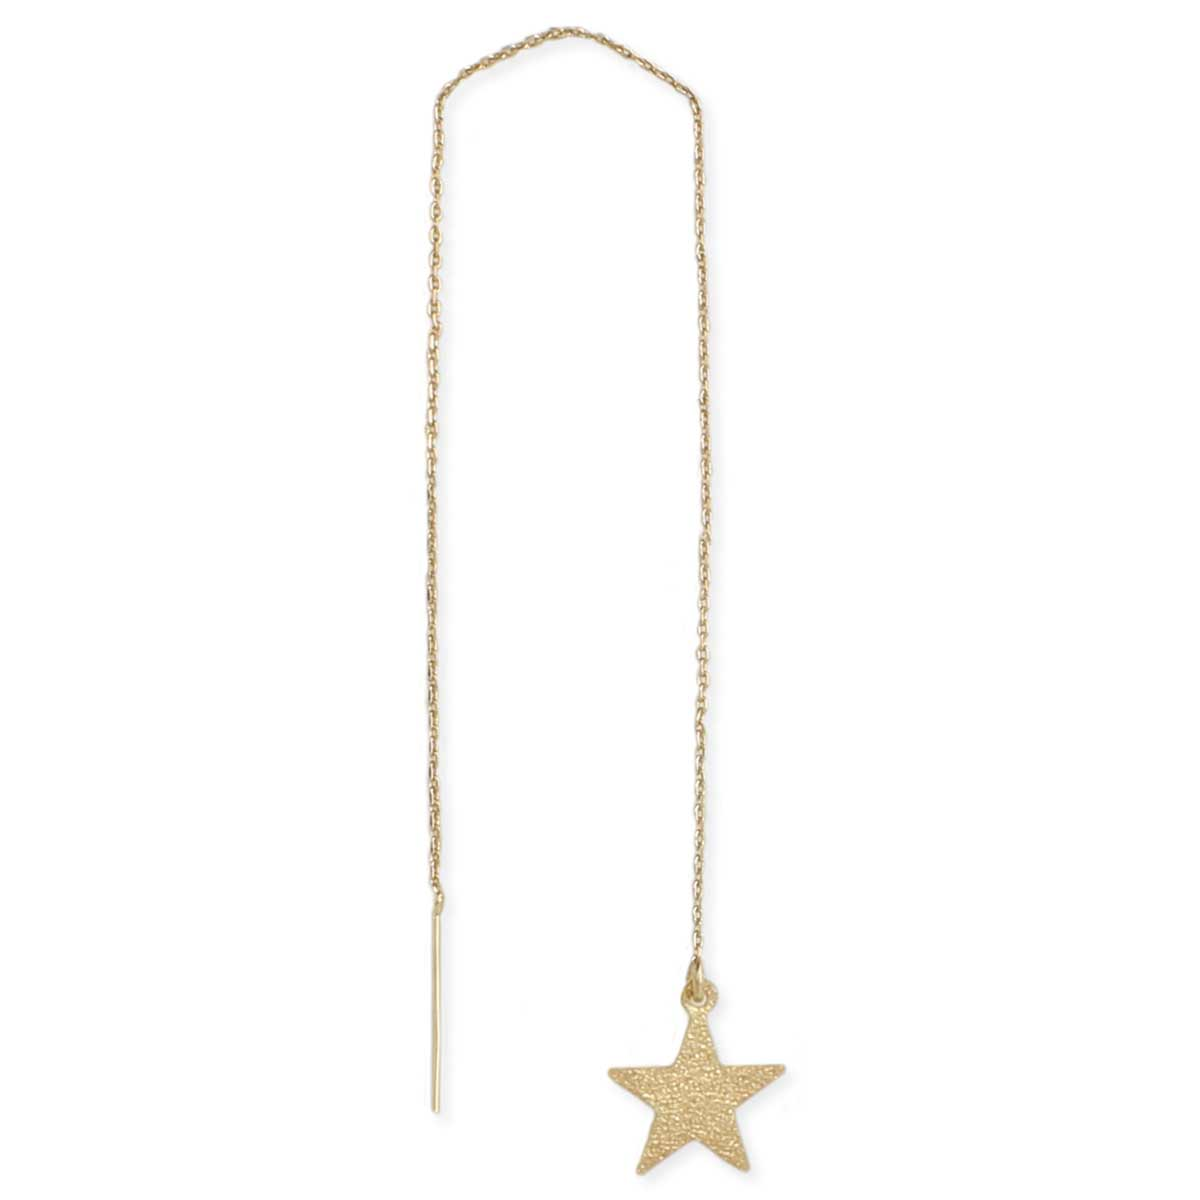 Gold Star Threader Earring